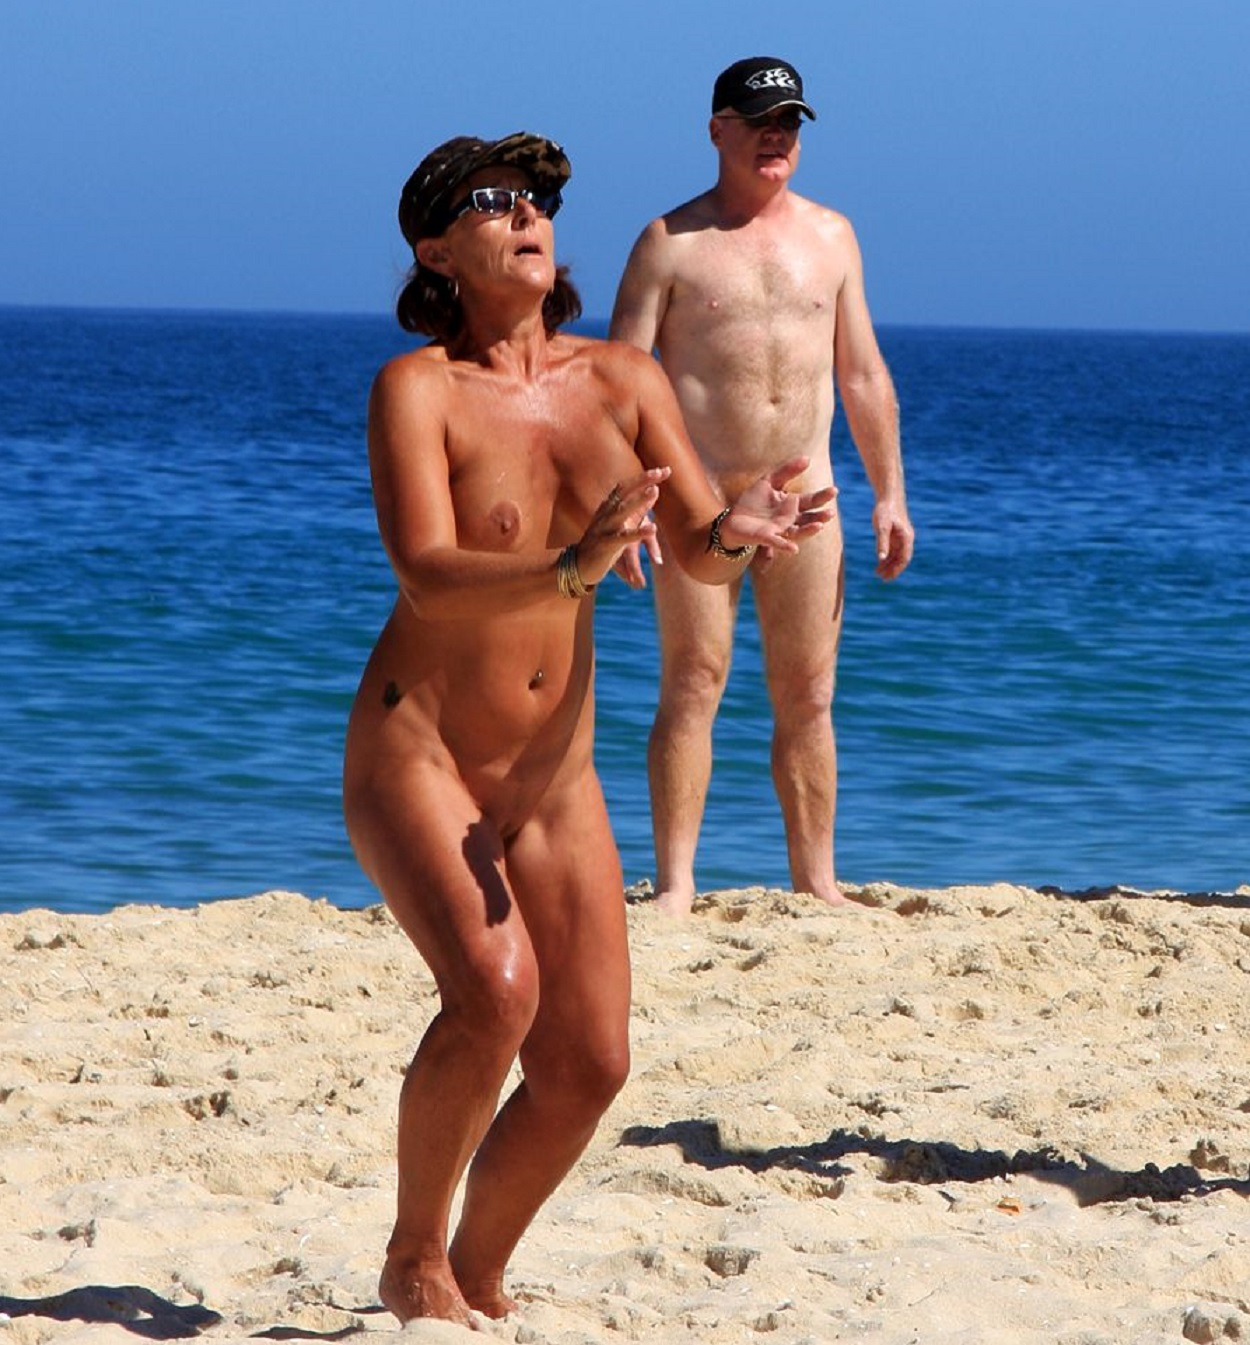 Beach nudity